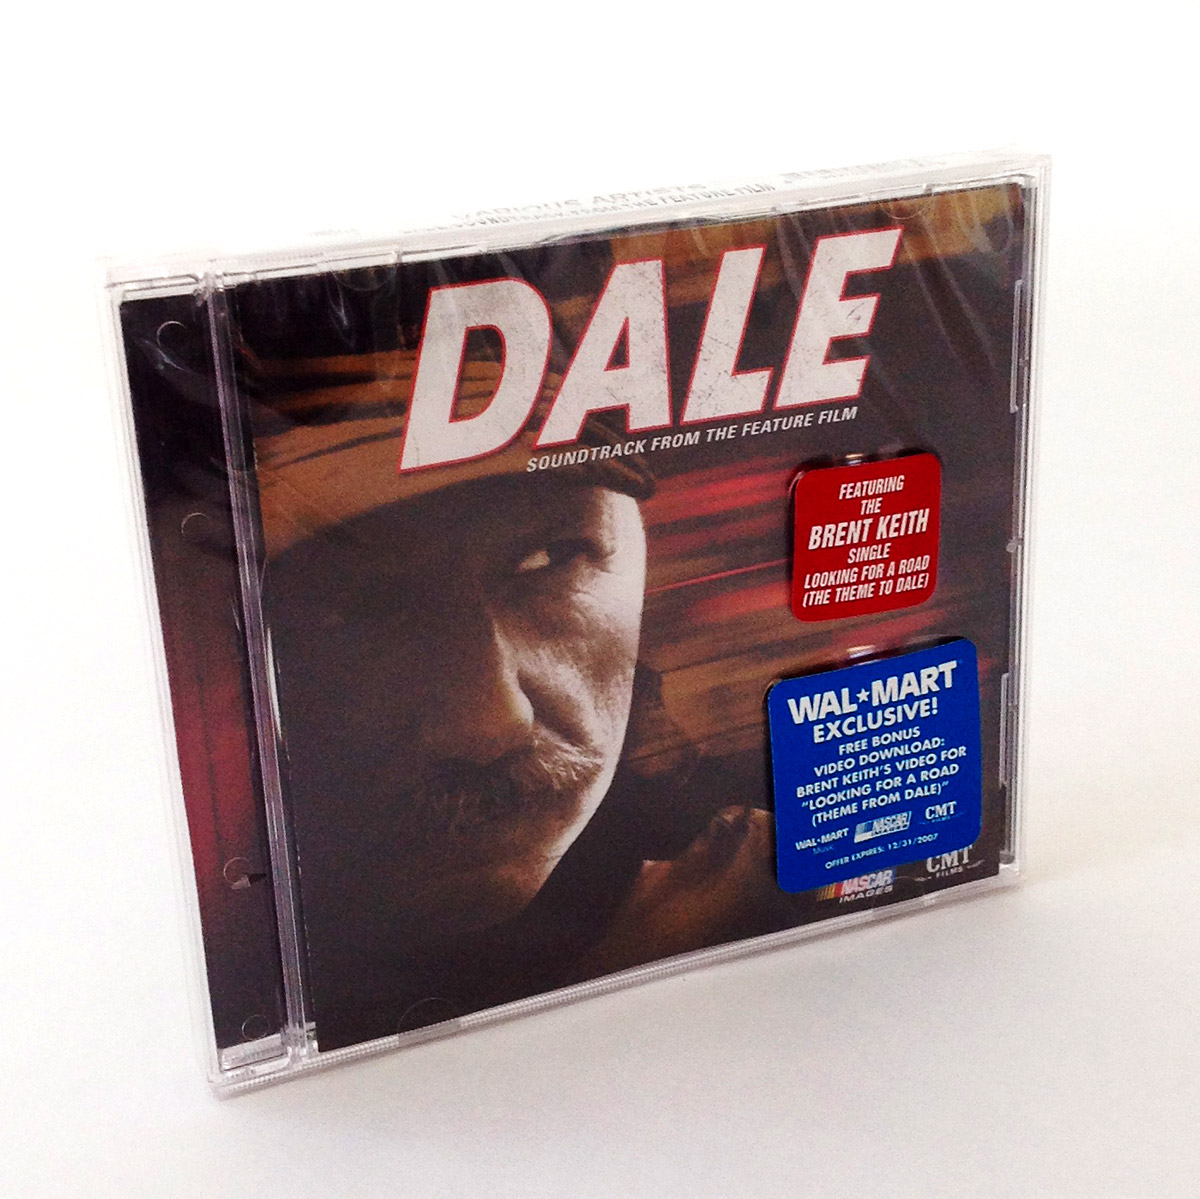 Dale Soundtrack — CD/Compact Disc Replication by OMM